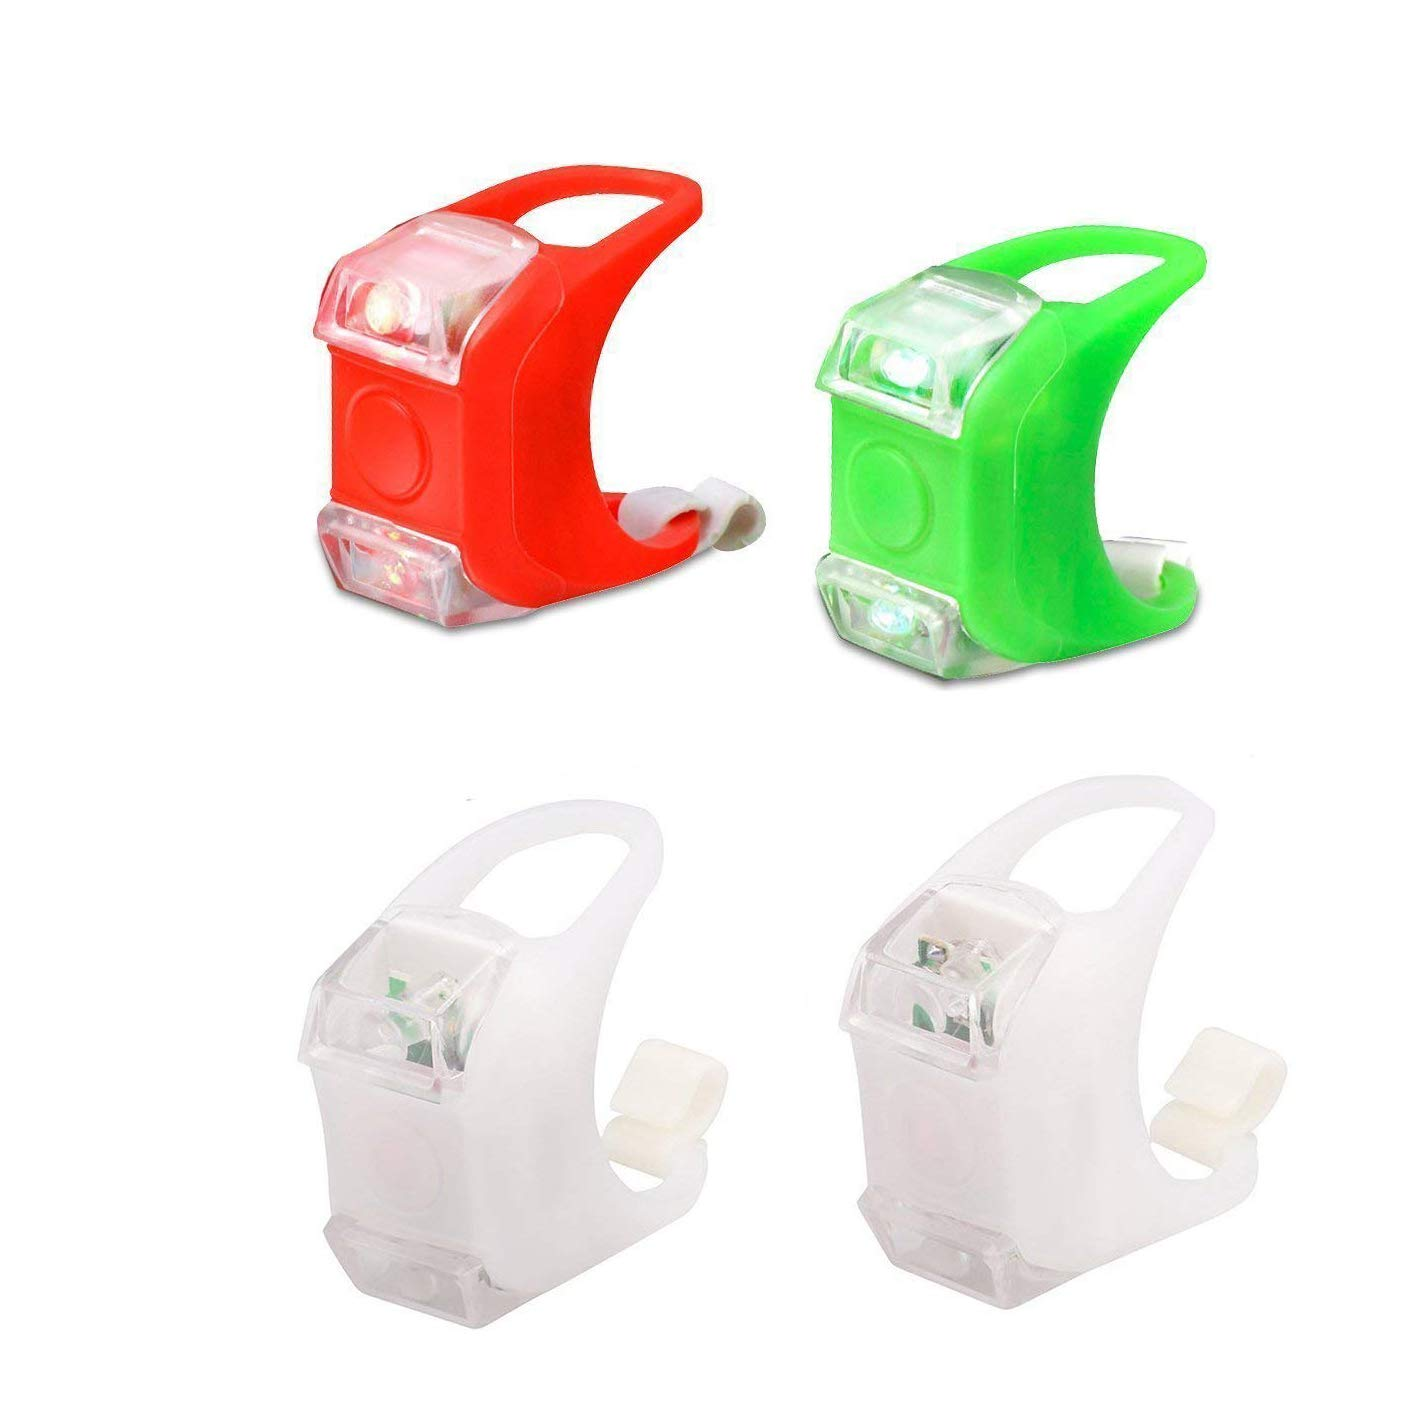 Deals4you Green & Red Portable Marine LED Boating Lights - Boat Bow or Stern Safety Lights-Kayak Navigation Lights, Backup Lights for Racing Sailboats and Day Sailors (Red & Green)